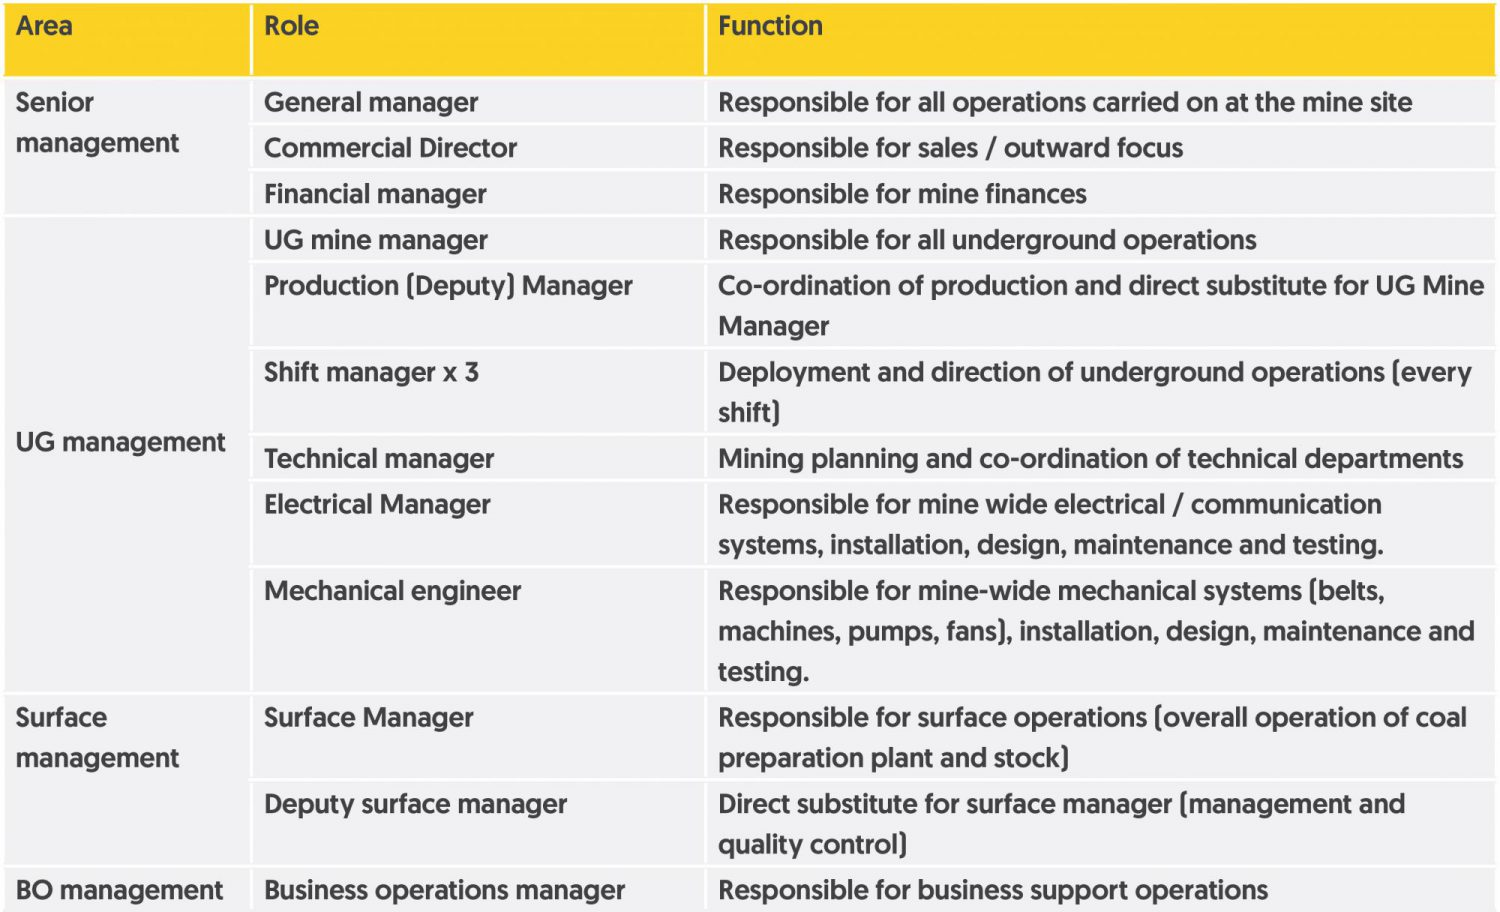 Management roles overview